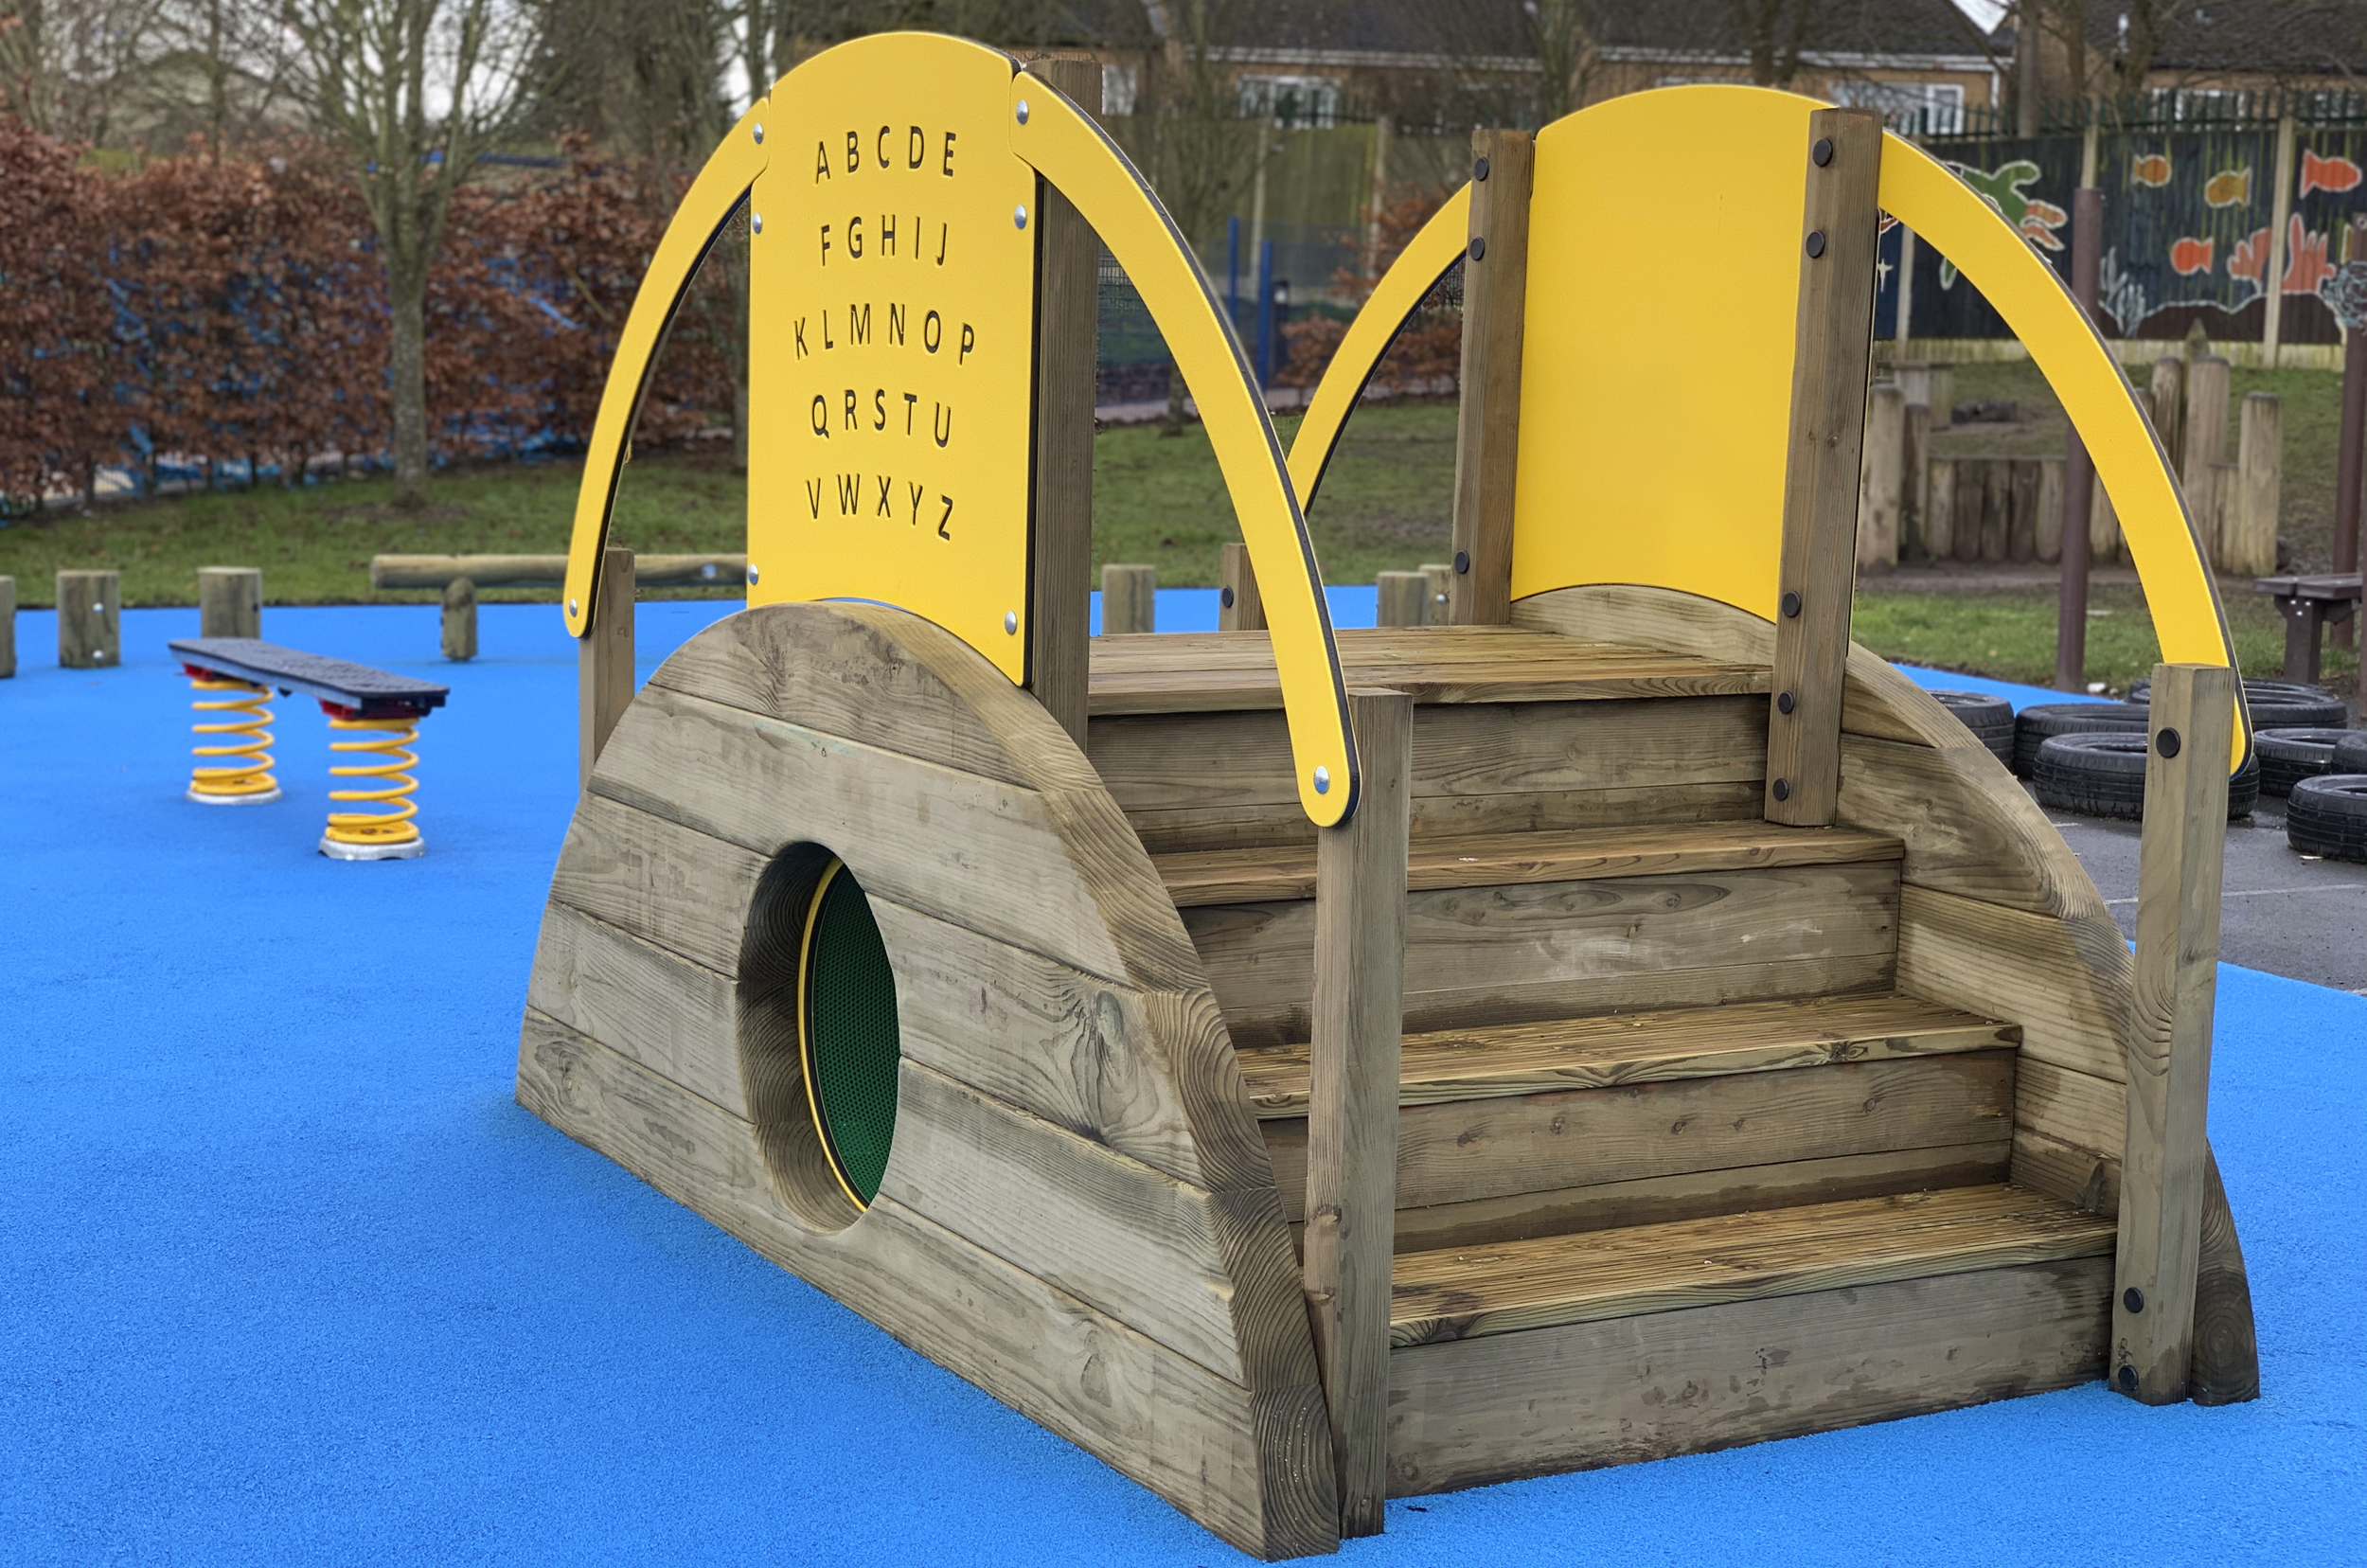 Sleeper Tunnel With Steps, the timber steps sit on the right with the green tunnel entrance at the centre. The yellow play panel show the alphabet